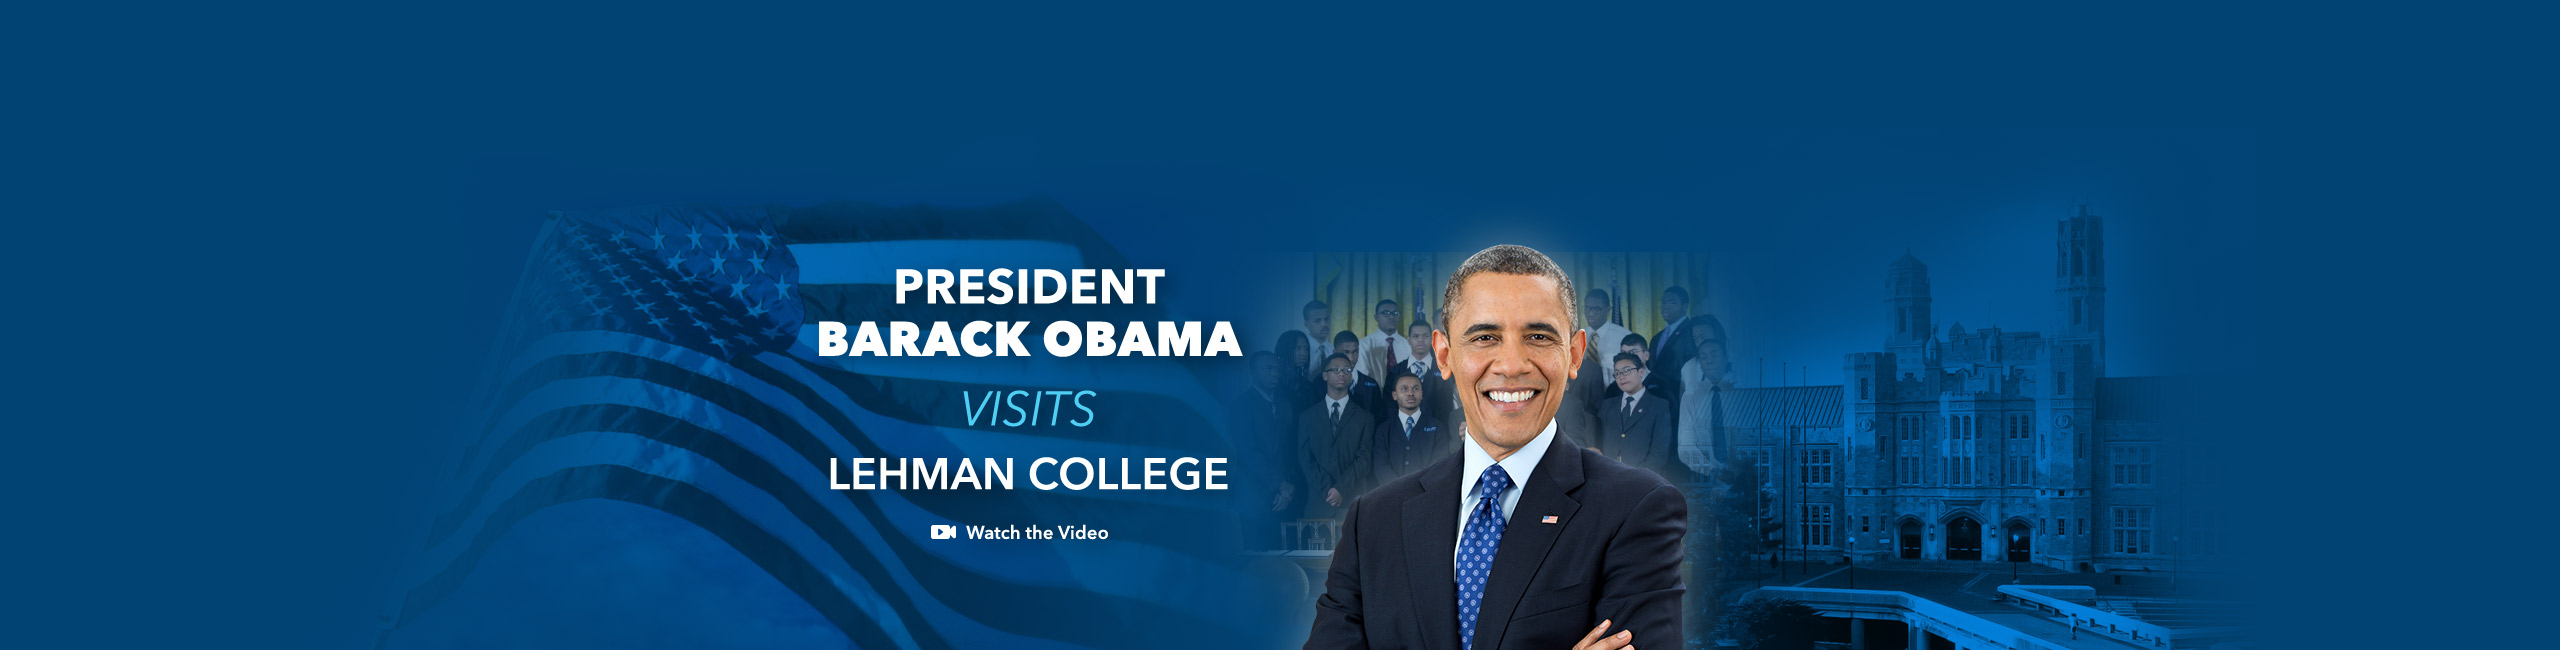 Lehman College Welcomes President Barack Obama